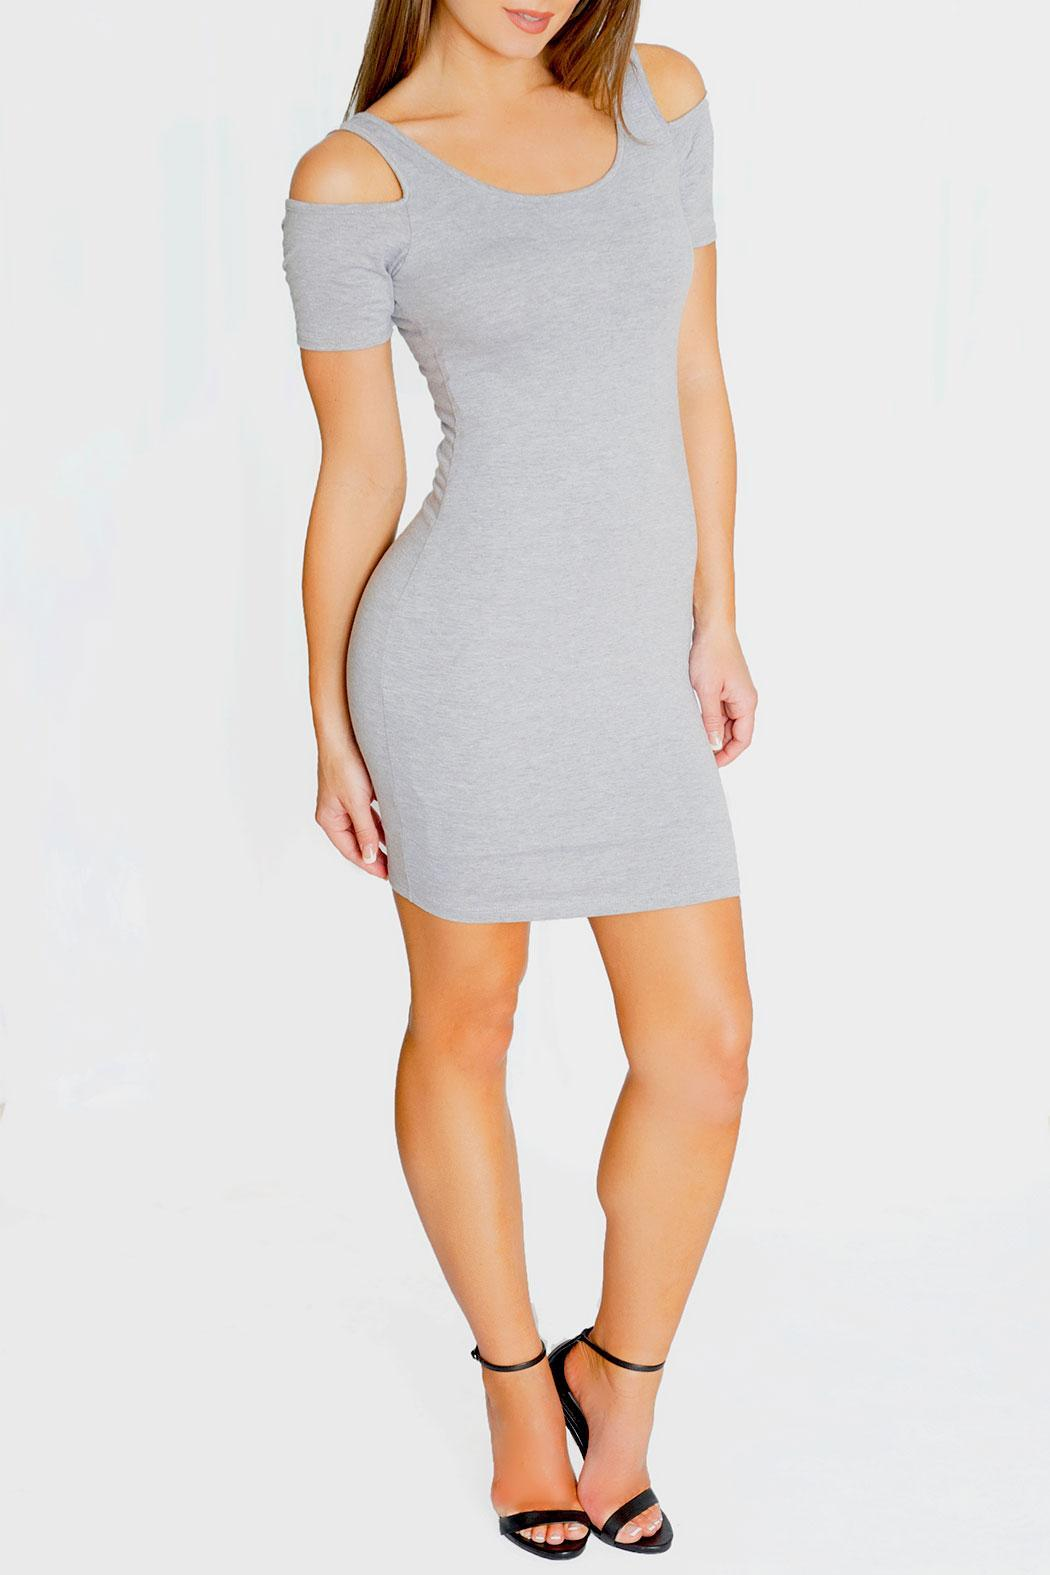 Chynna Dolls Tatum Casual Dress - Front Cropped Image